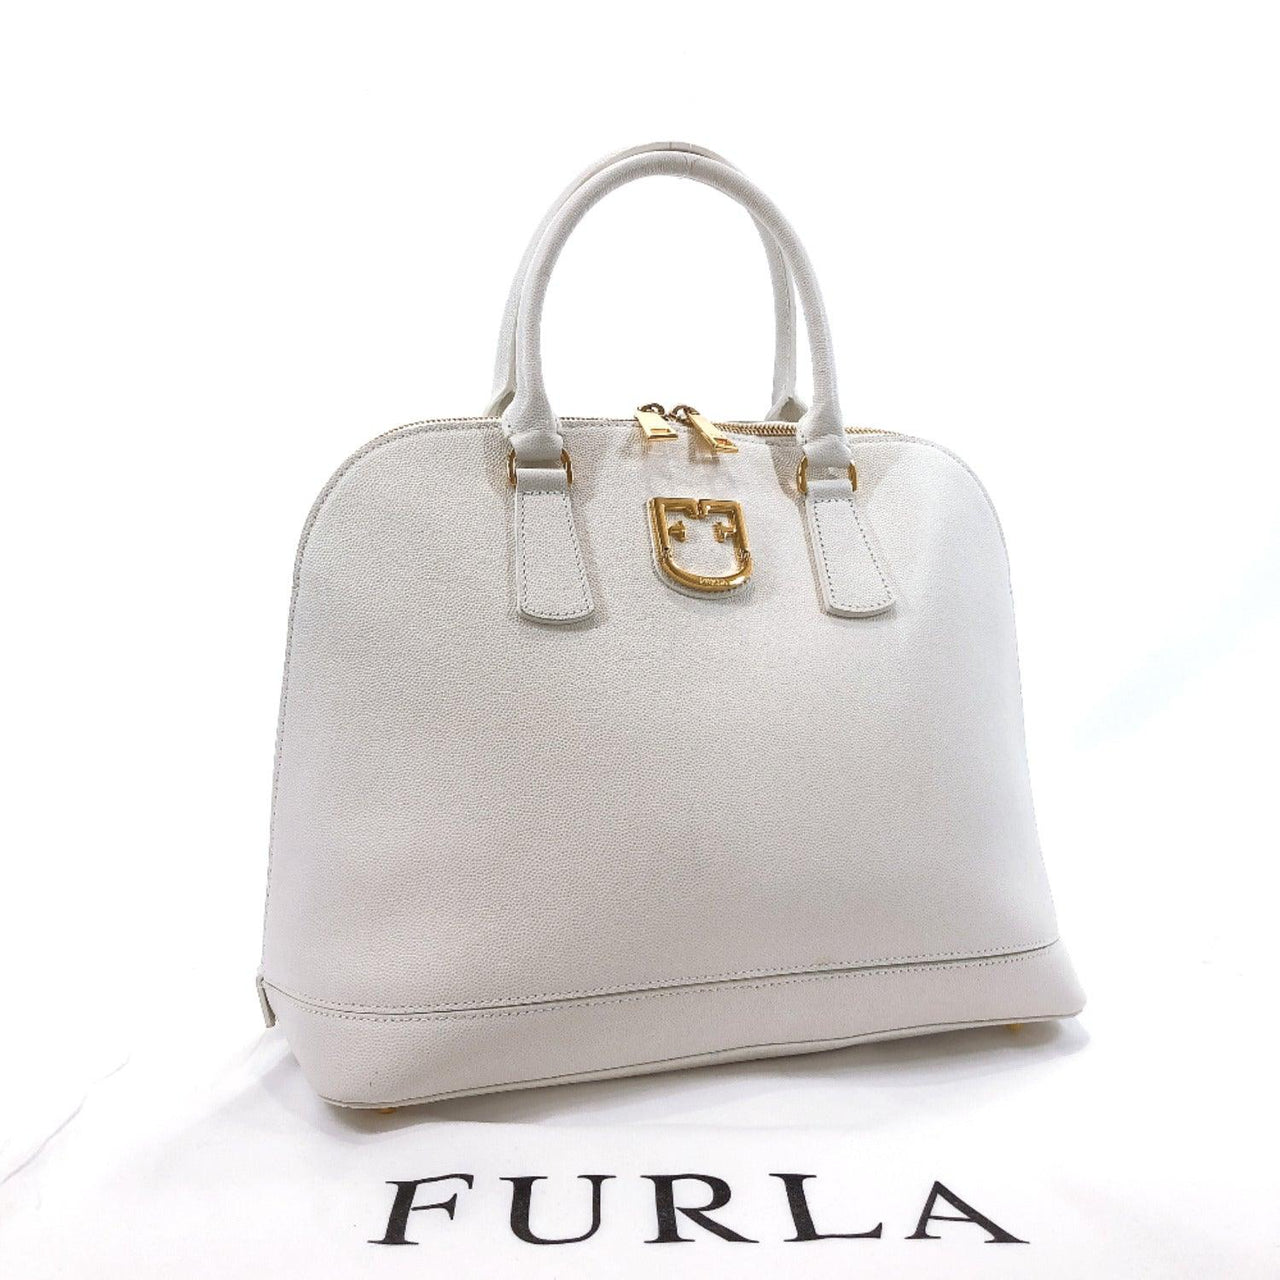 Furla Handbag 286247 leather white Women Used